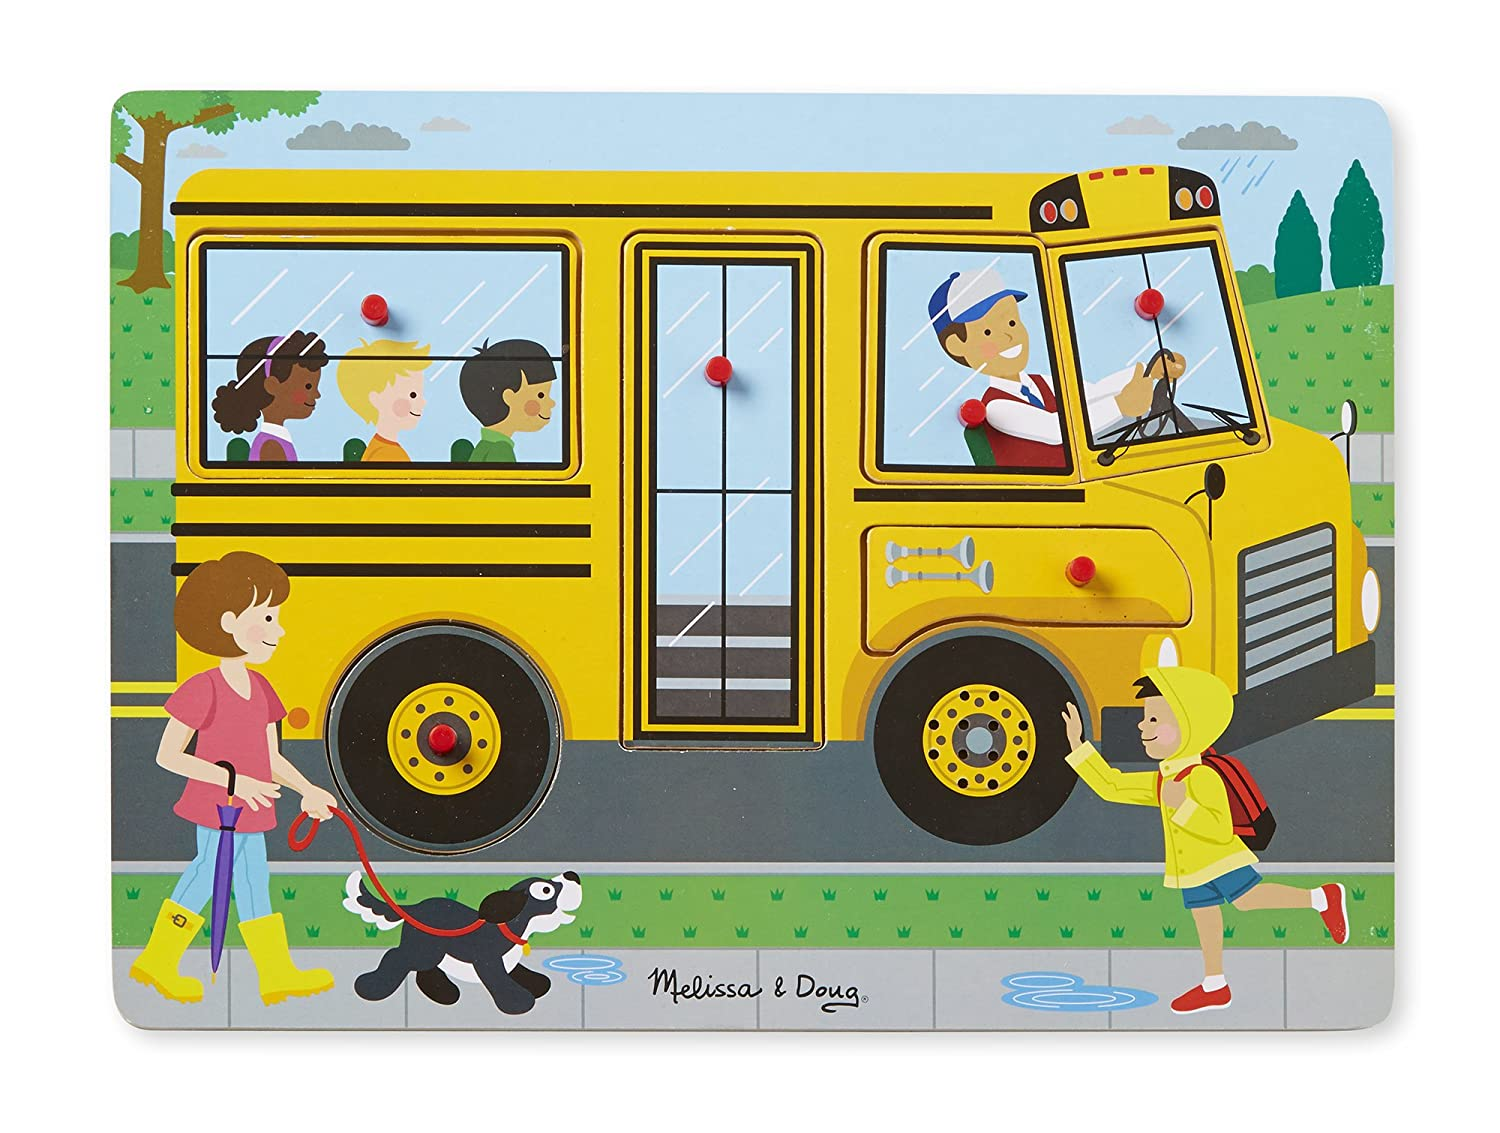 Melissa & Doug The Wheels On The Bus Sound Puzzle (6 Piece) Game MELRT 739